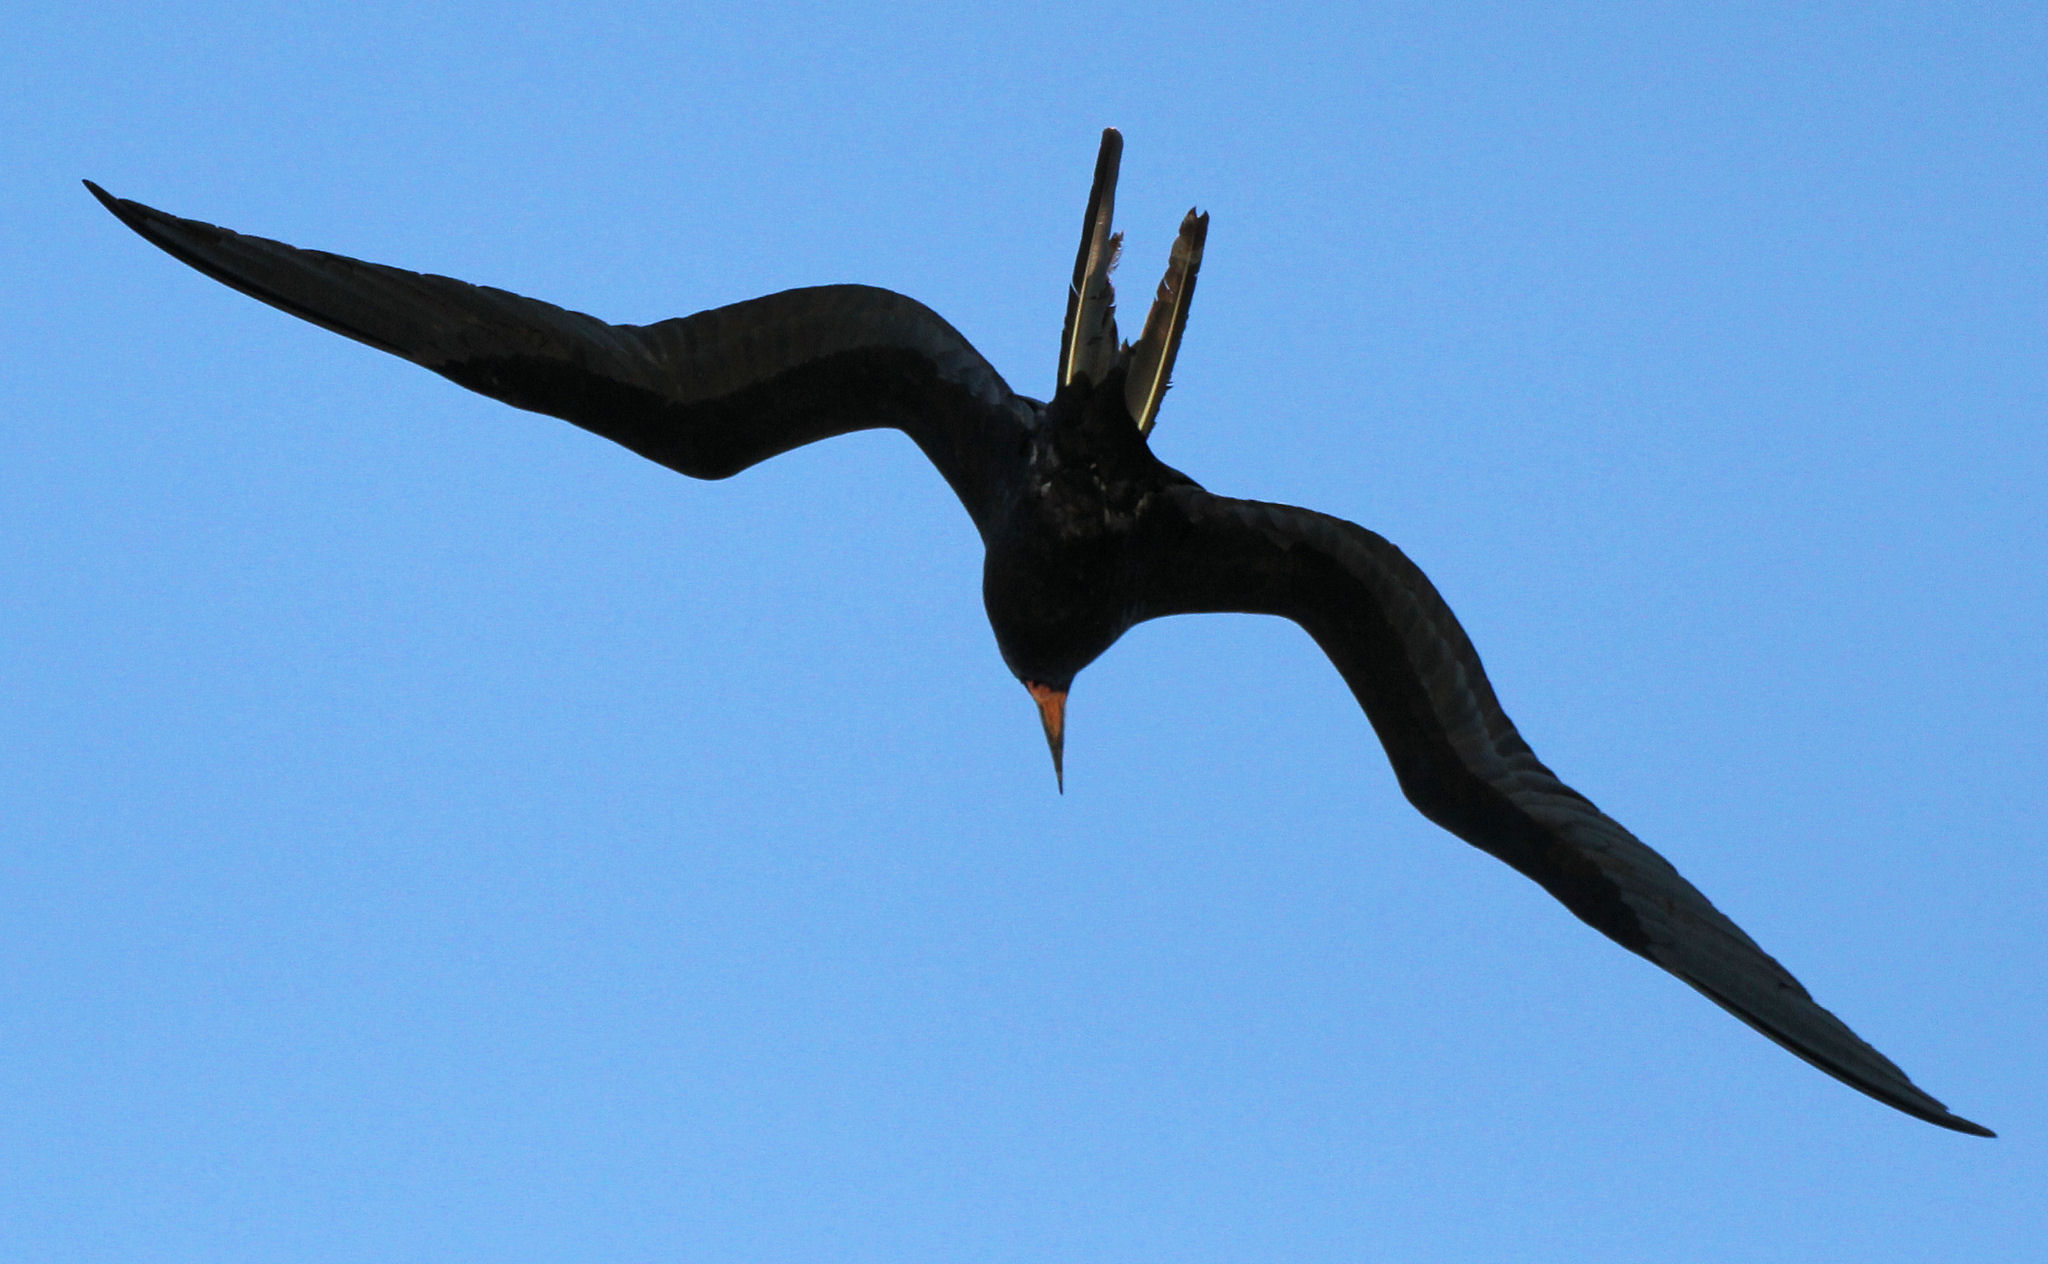 adult male magnificent frigatebird approaching 06 - Dry Tortugas, FL - 2012-04-26